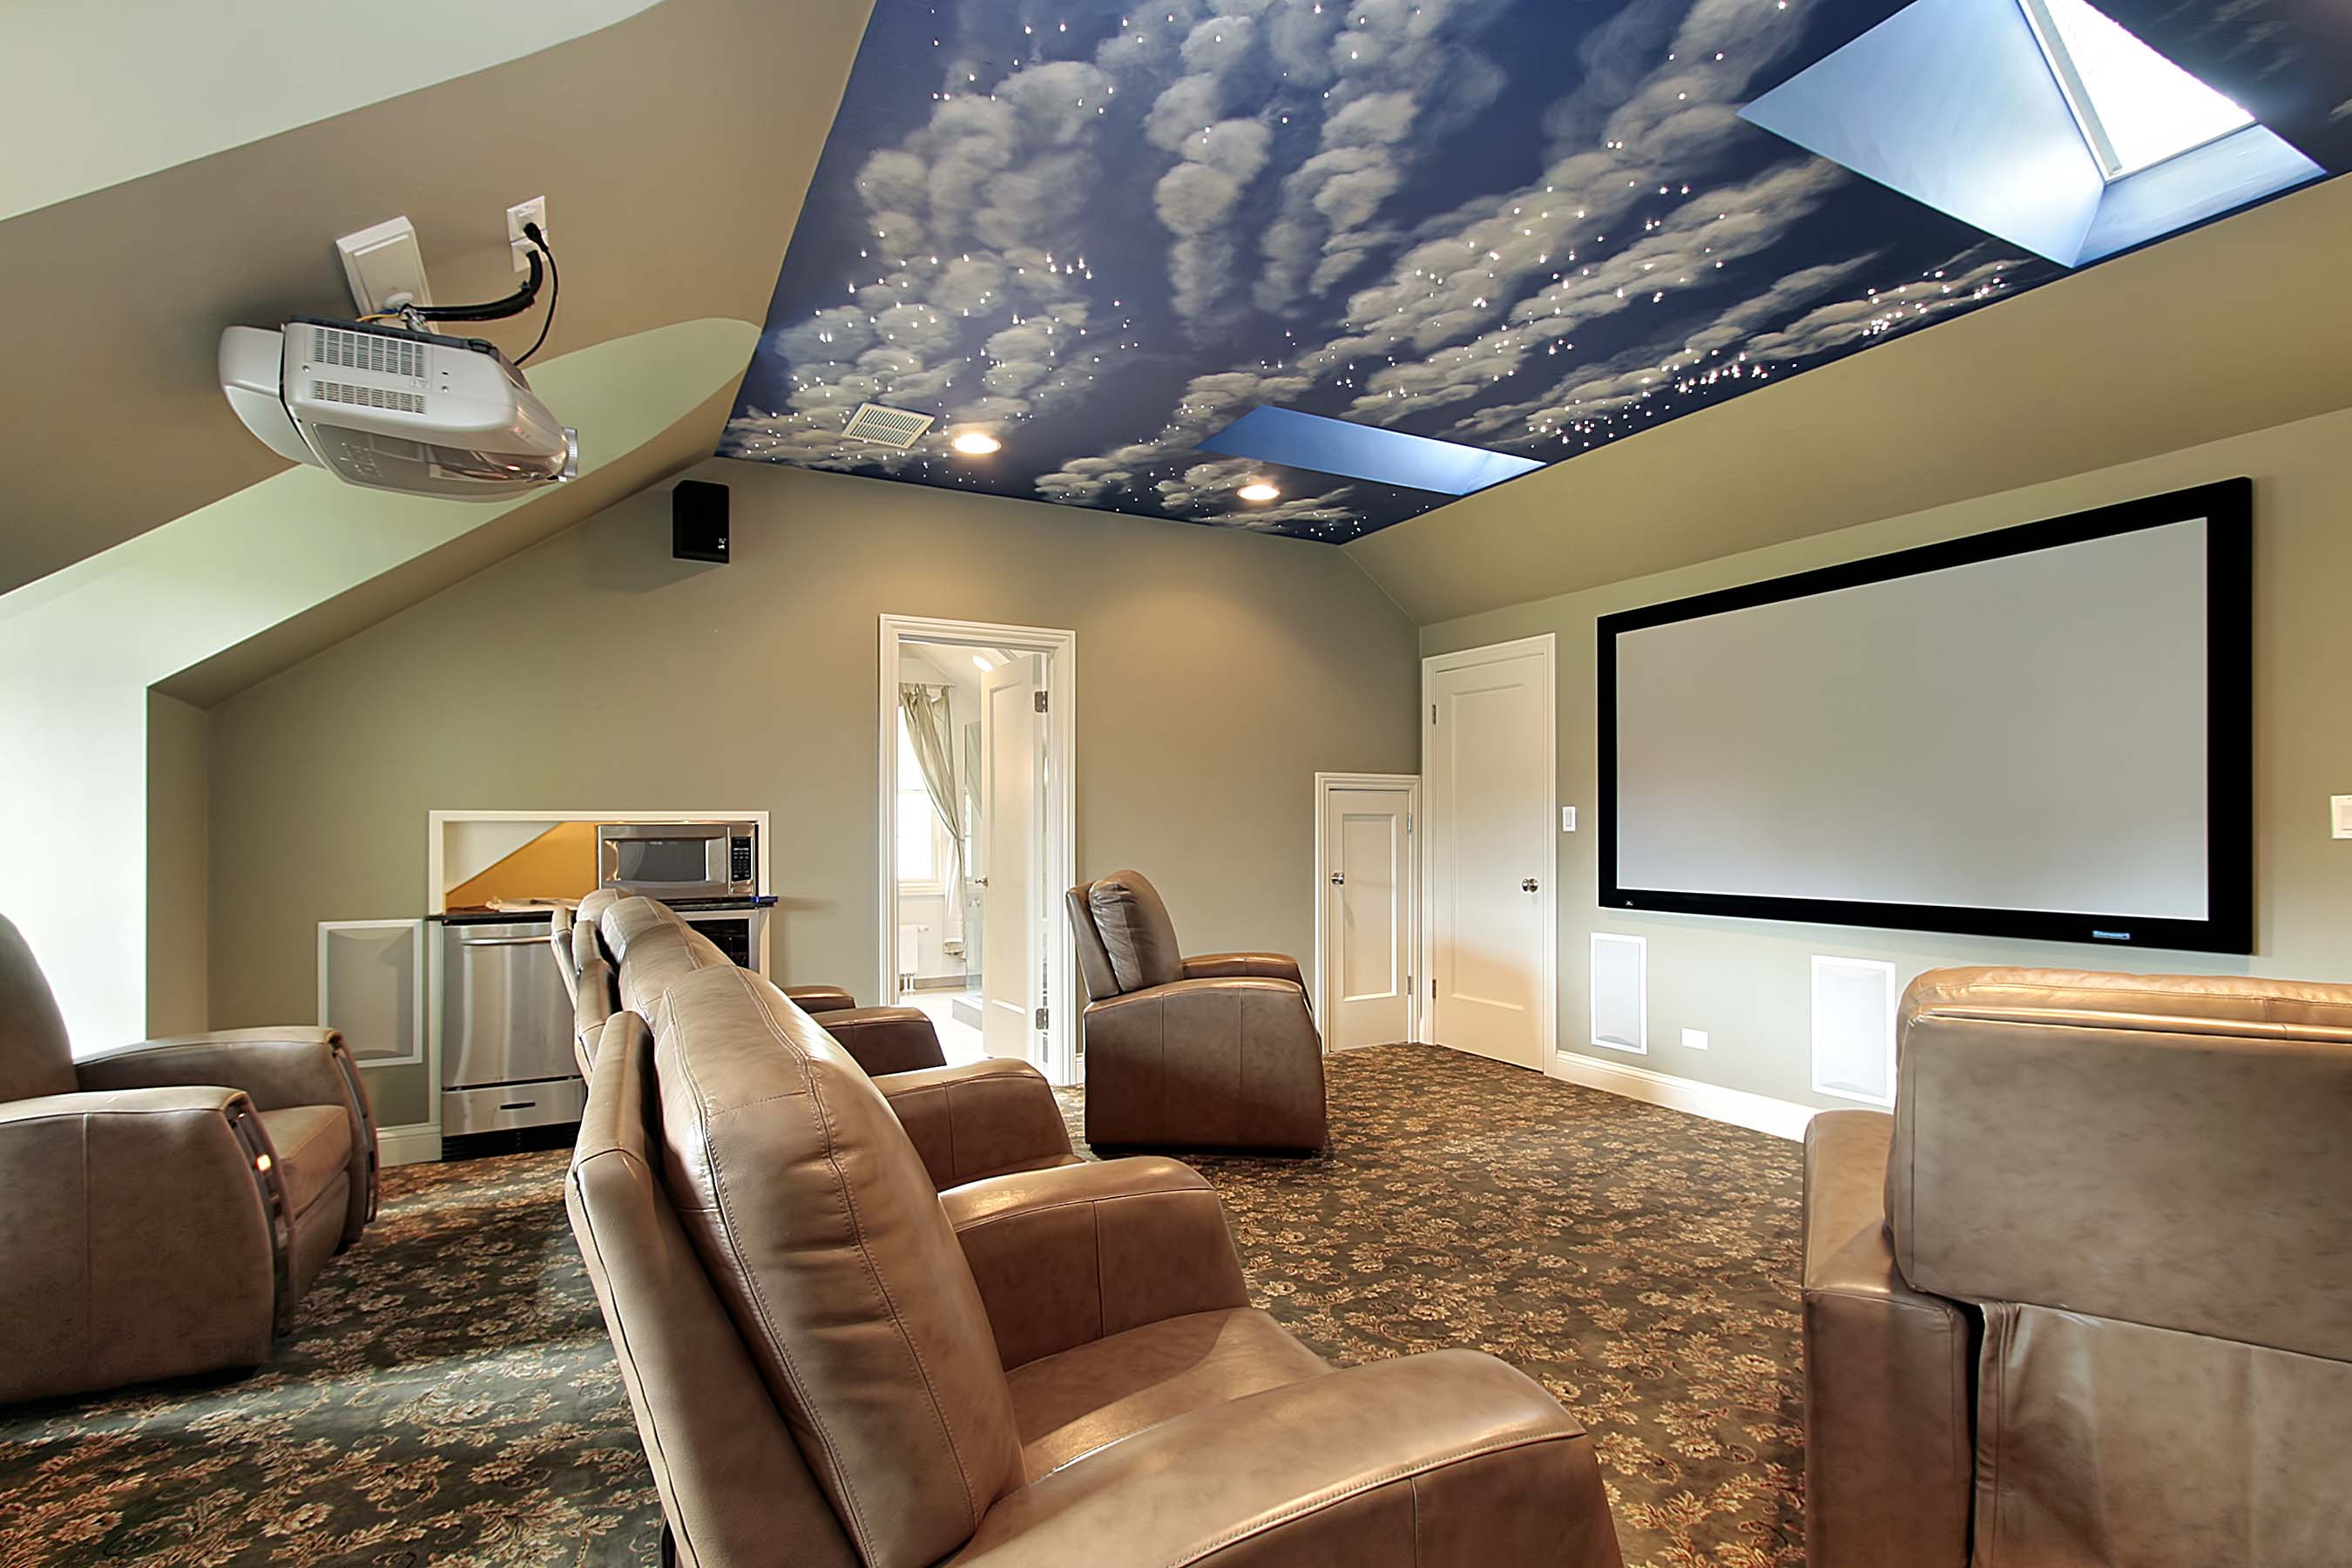 interior stunning home movie theater rooms design with arranged brown sofas on flora rug and mount on wall big screen also decorative ceiling ideas fabulous home movie theater rooms design full enter